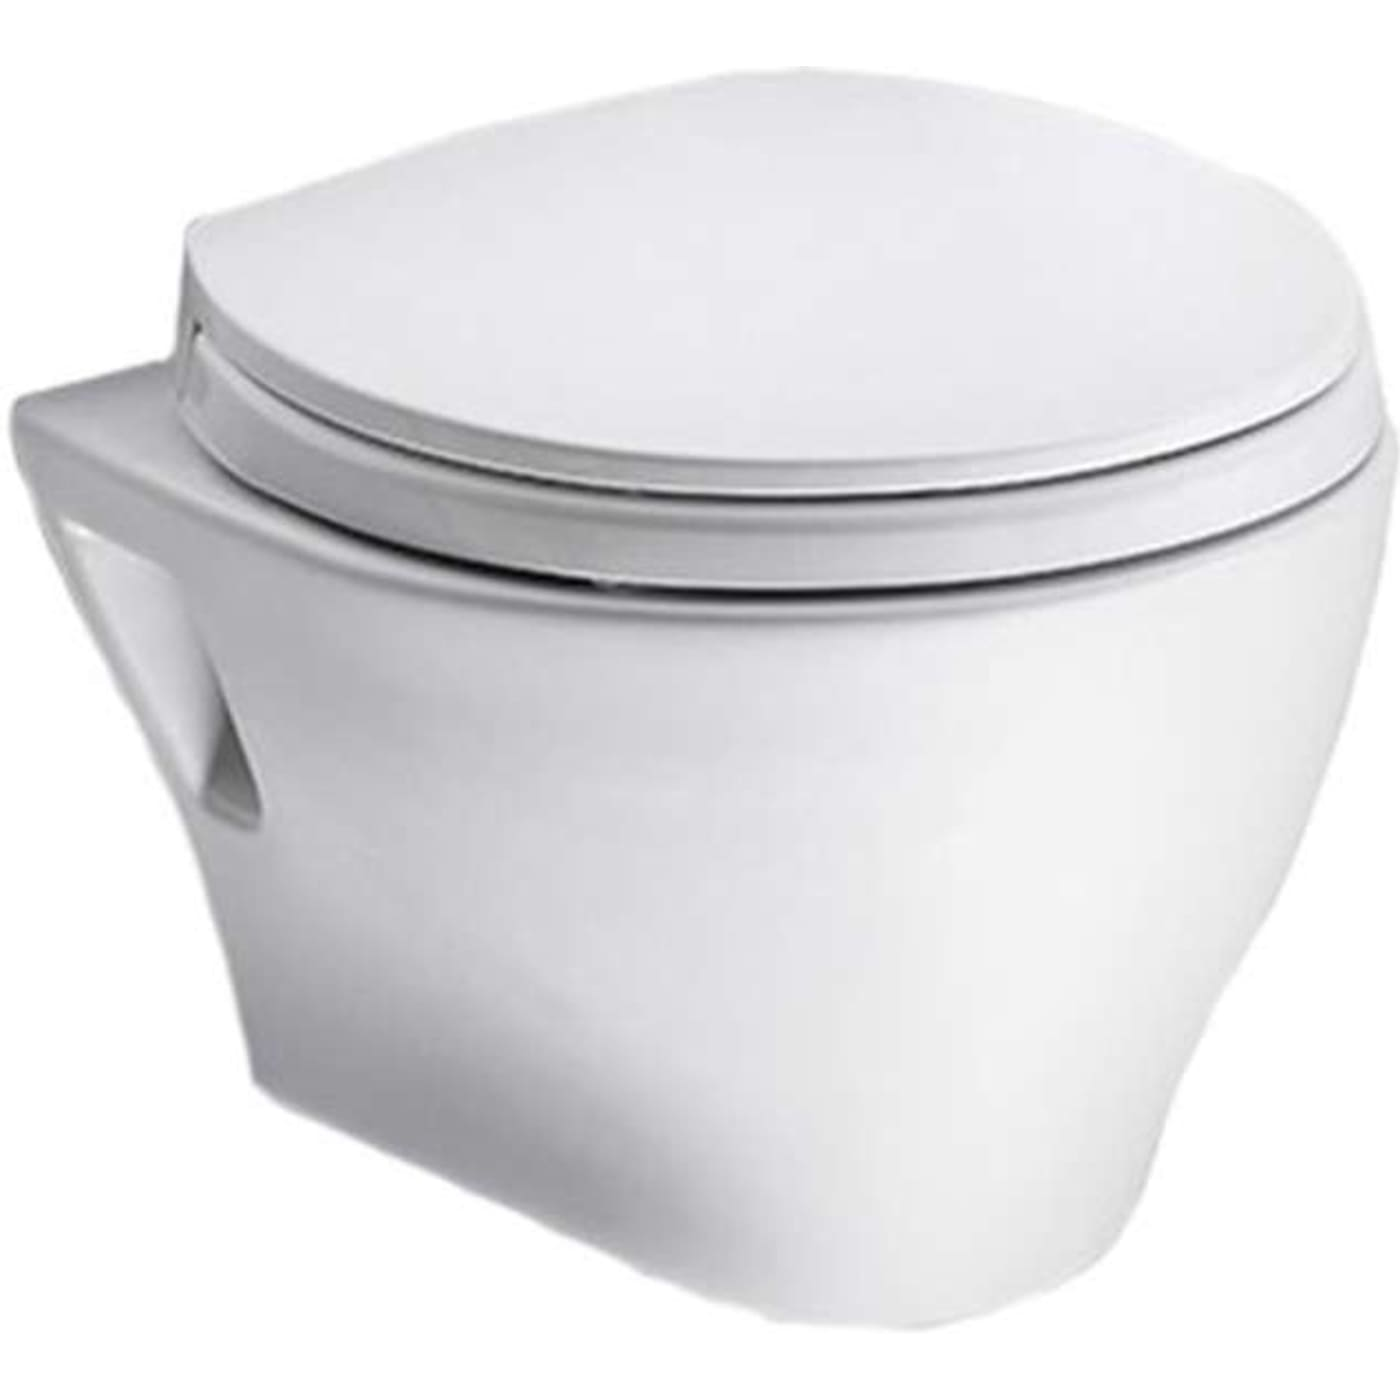 Toto Aquia In-Wall Water Supply CWT418MFG-1#01 Cotton White ...